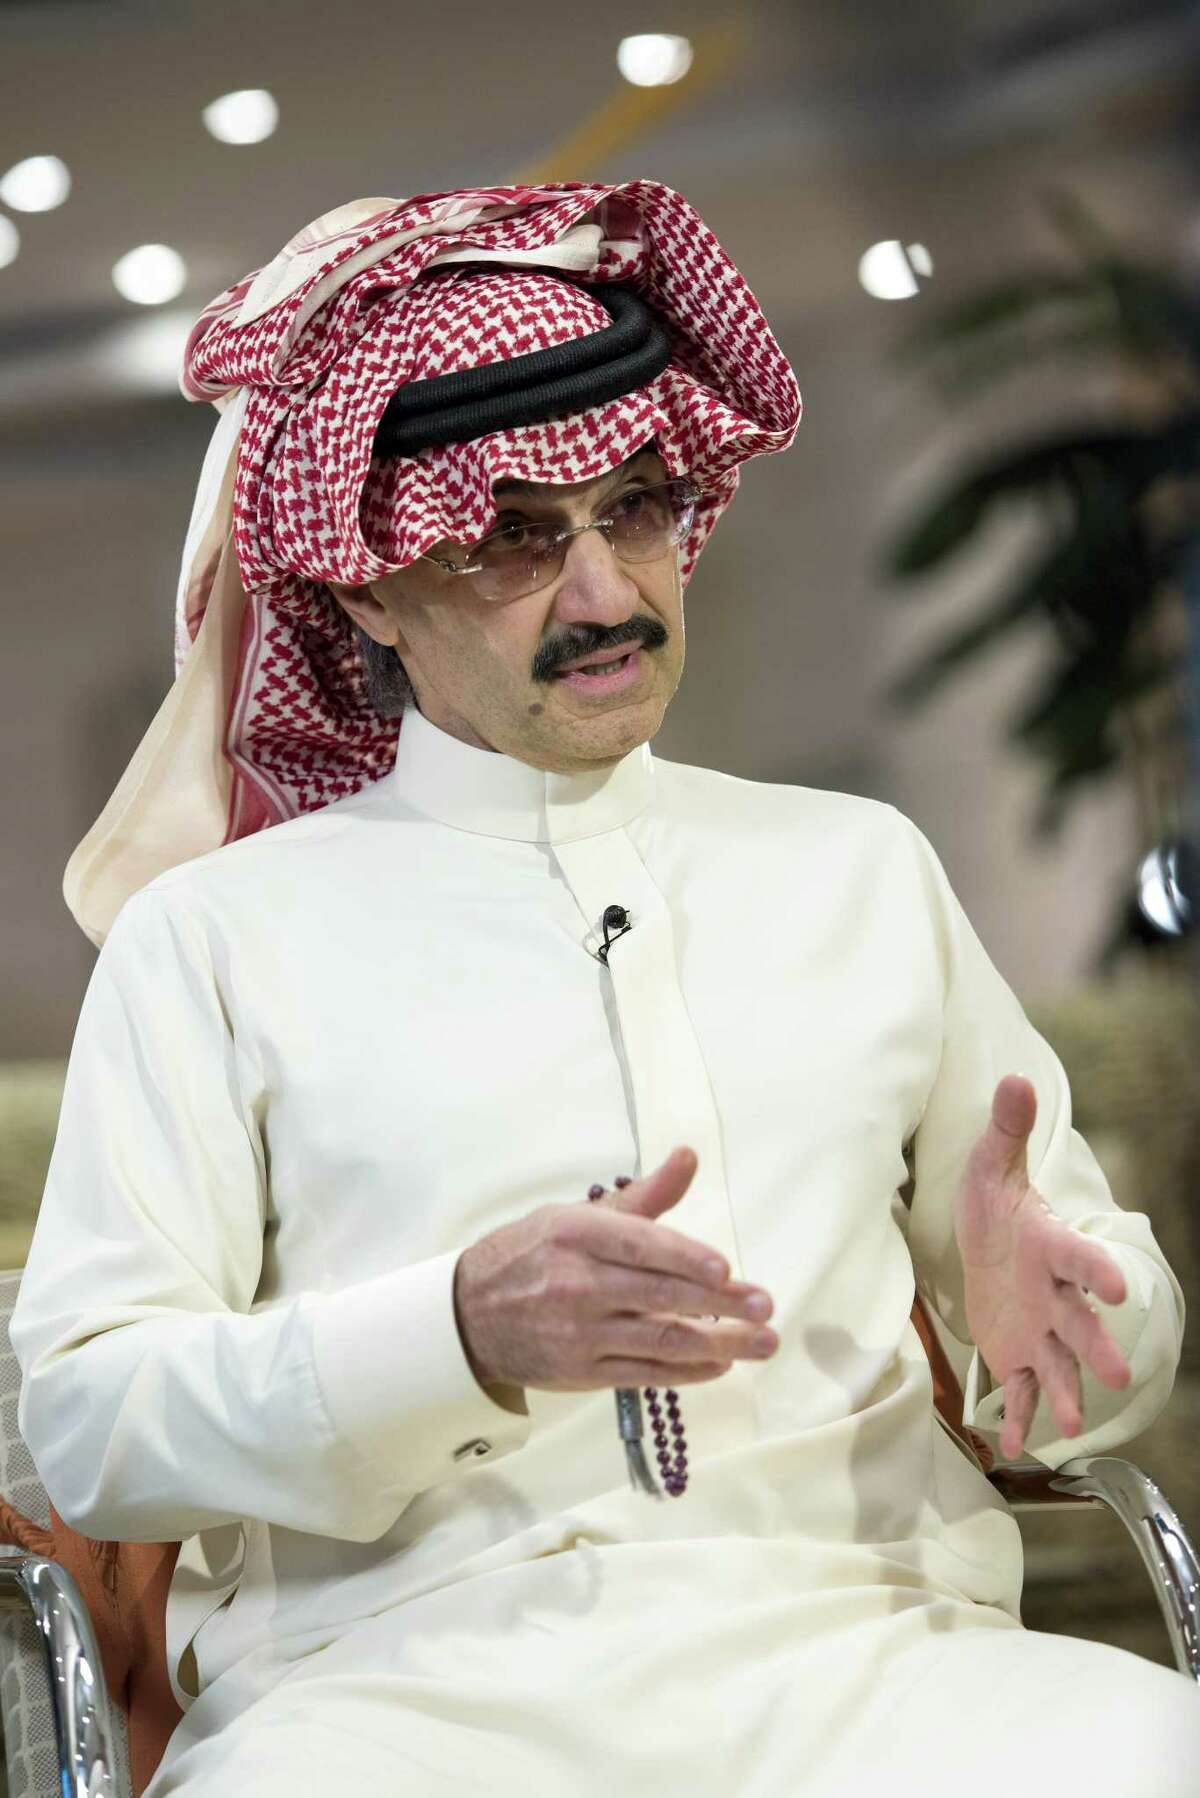 FILE: Prince Alwaleed Bin Talal, Saudi billionaire and founder of Kingdom Holding Co., speaks during a Bloomberg Television interview at the MiSK Global Forum event in Riyadh, Saudi Arabia, on Wednesday, Nov. 16, 2016. Saudi ArabiaÂ?'s King Salman embarked on the most sweeping crackdown yet of his reign, ordering security forces to arrest senior princes including one of the worldÂ?'s richest men and driving out one of the most prominent officials from his ministerial role. Those detained included billionaire Prince Alwaleed bin Talal, who was picked up at his desert camp outside Riyadh, according to a senior Saudi official. Our editors select the best archive images of Prince Alwaleed bin Talal. Photographer: Mohammad Obaidi/Bloomberg